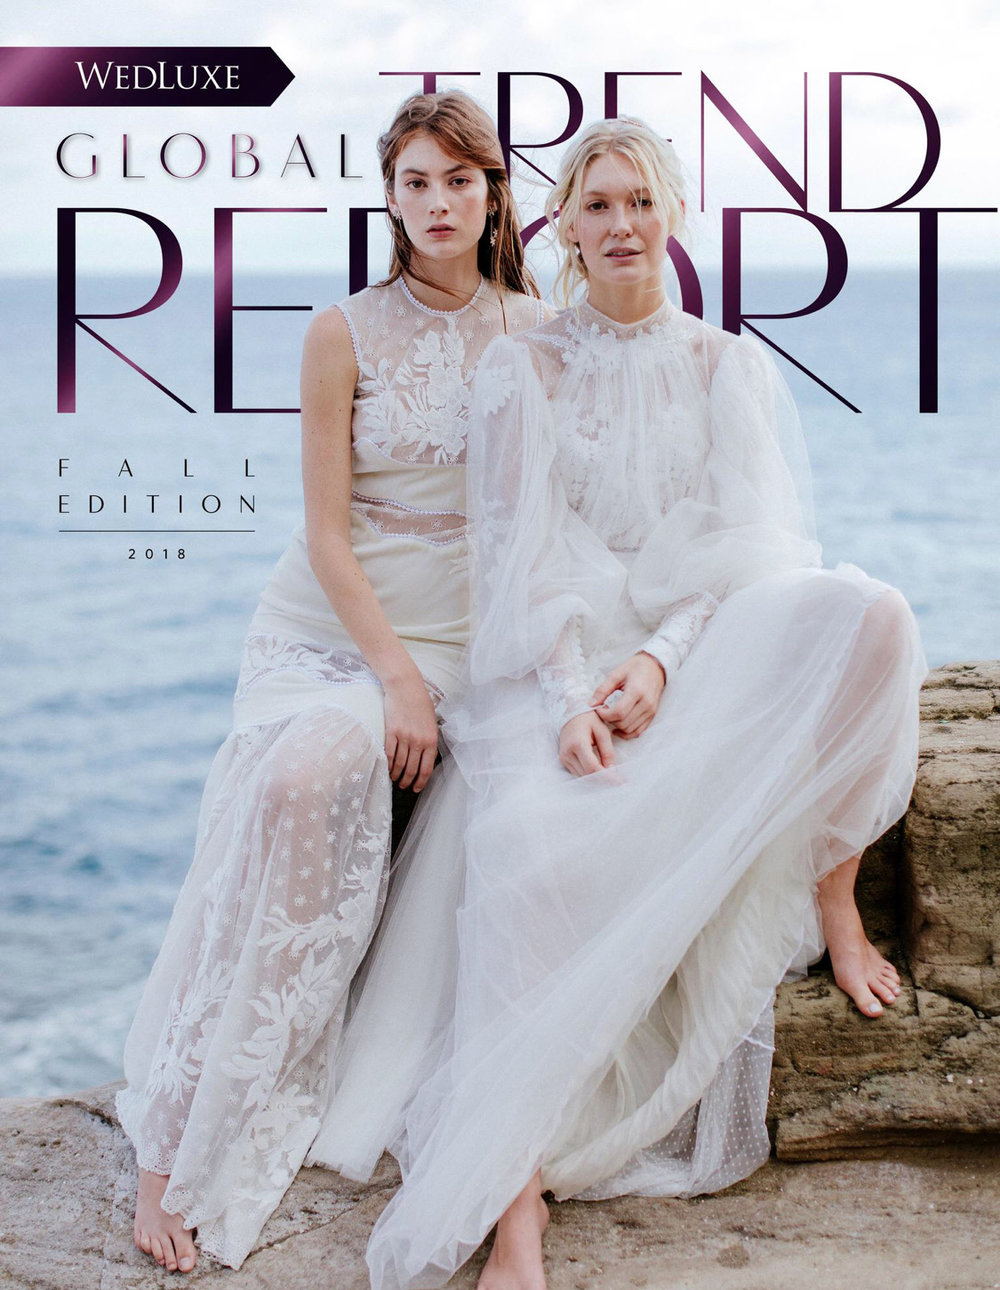 Wedluxe Global Trend Report 2018